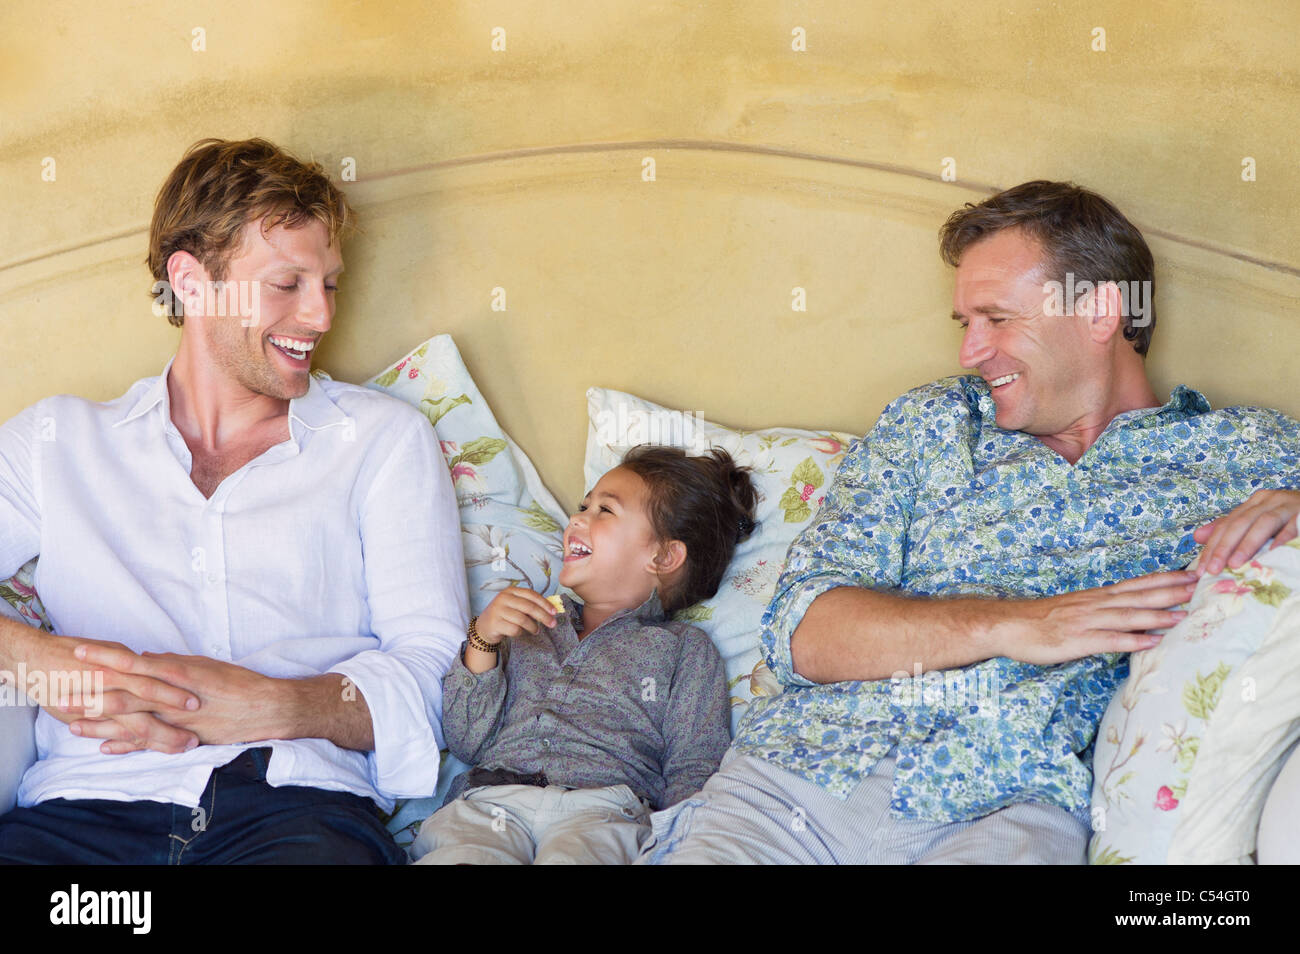 Family having good time at house - Stock Image